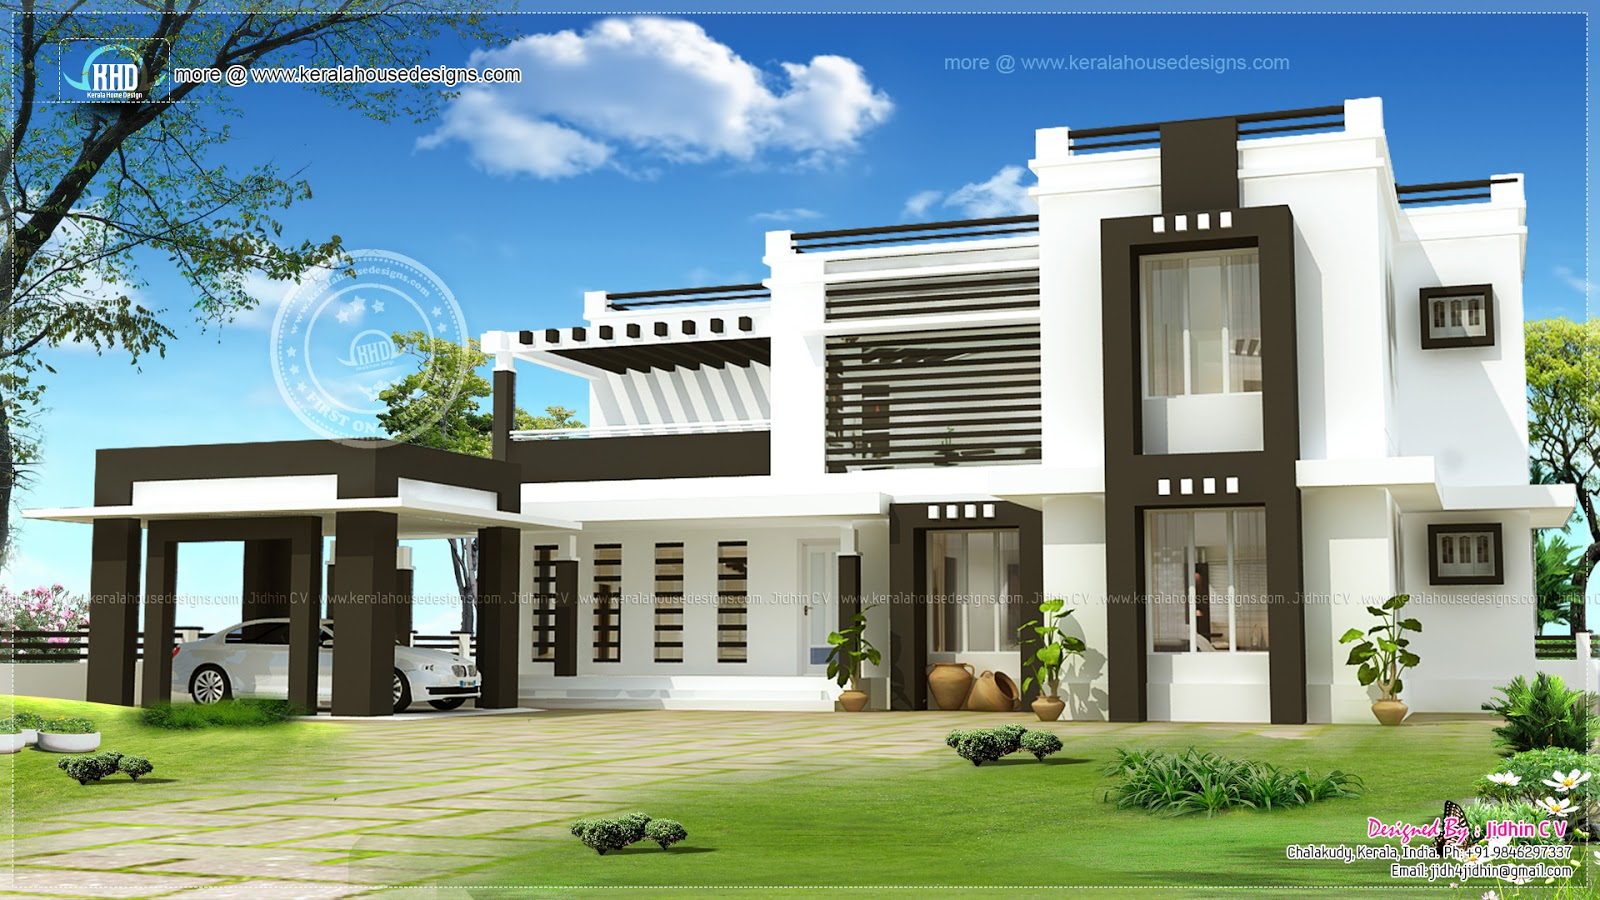 Flat Roof Home's Exterior Design 1600 x 900